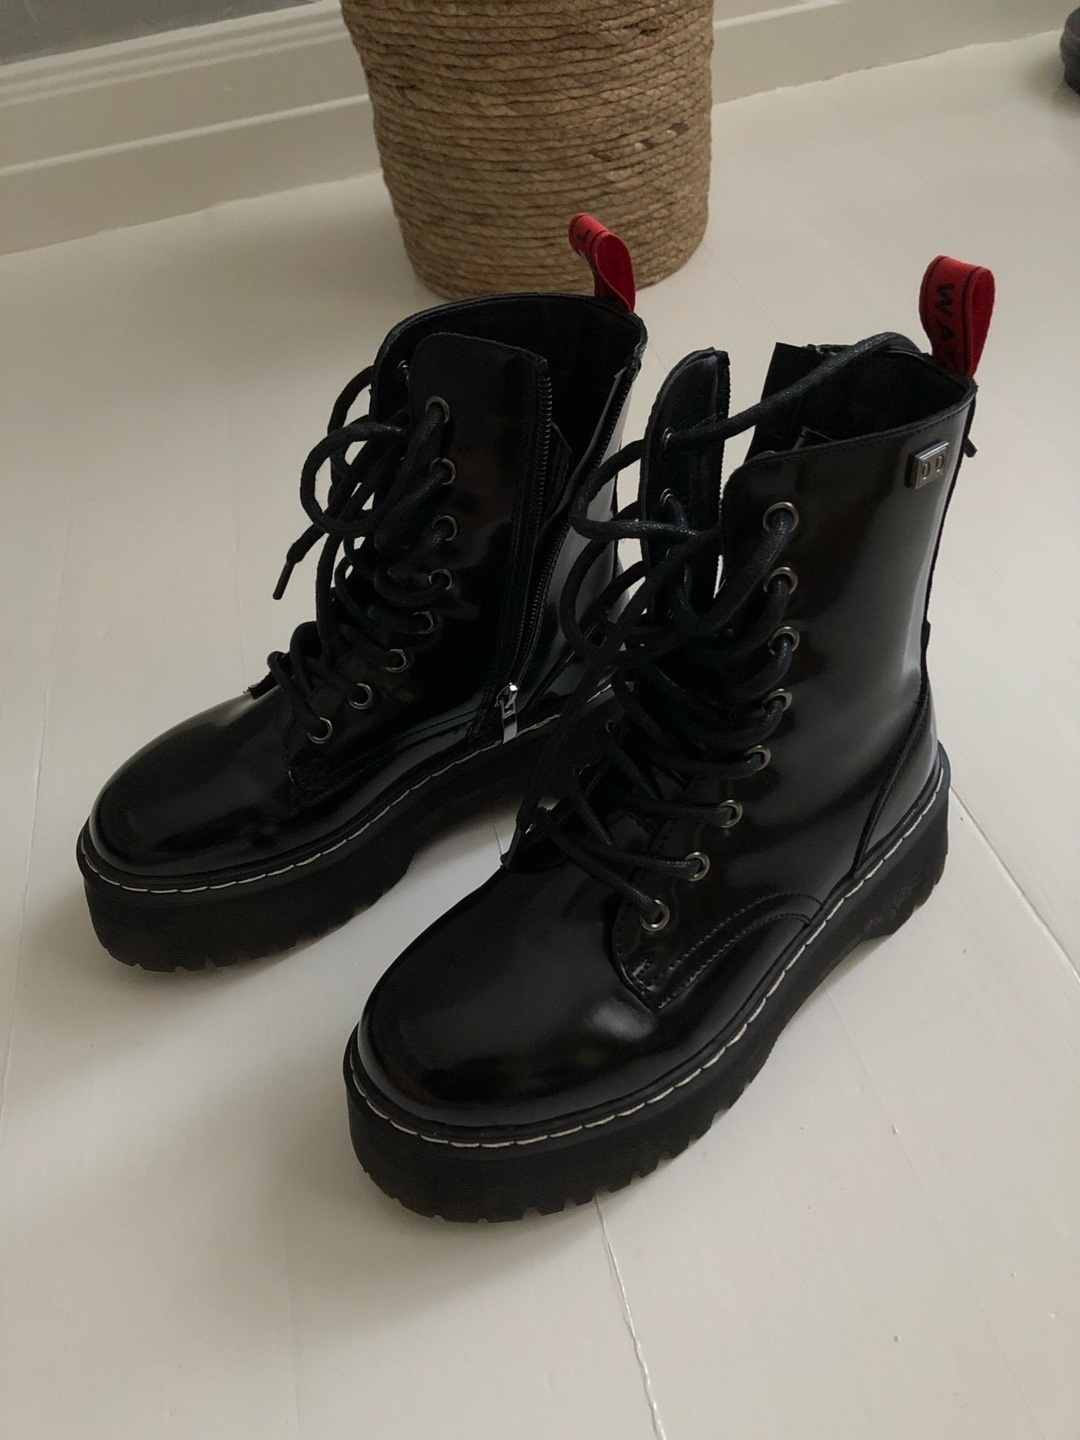 Women's boots - COOLWAY photo 4